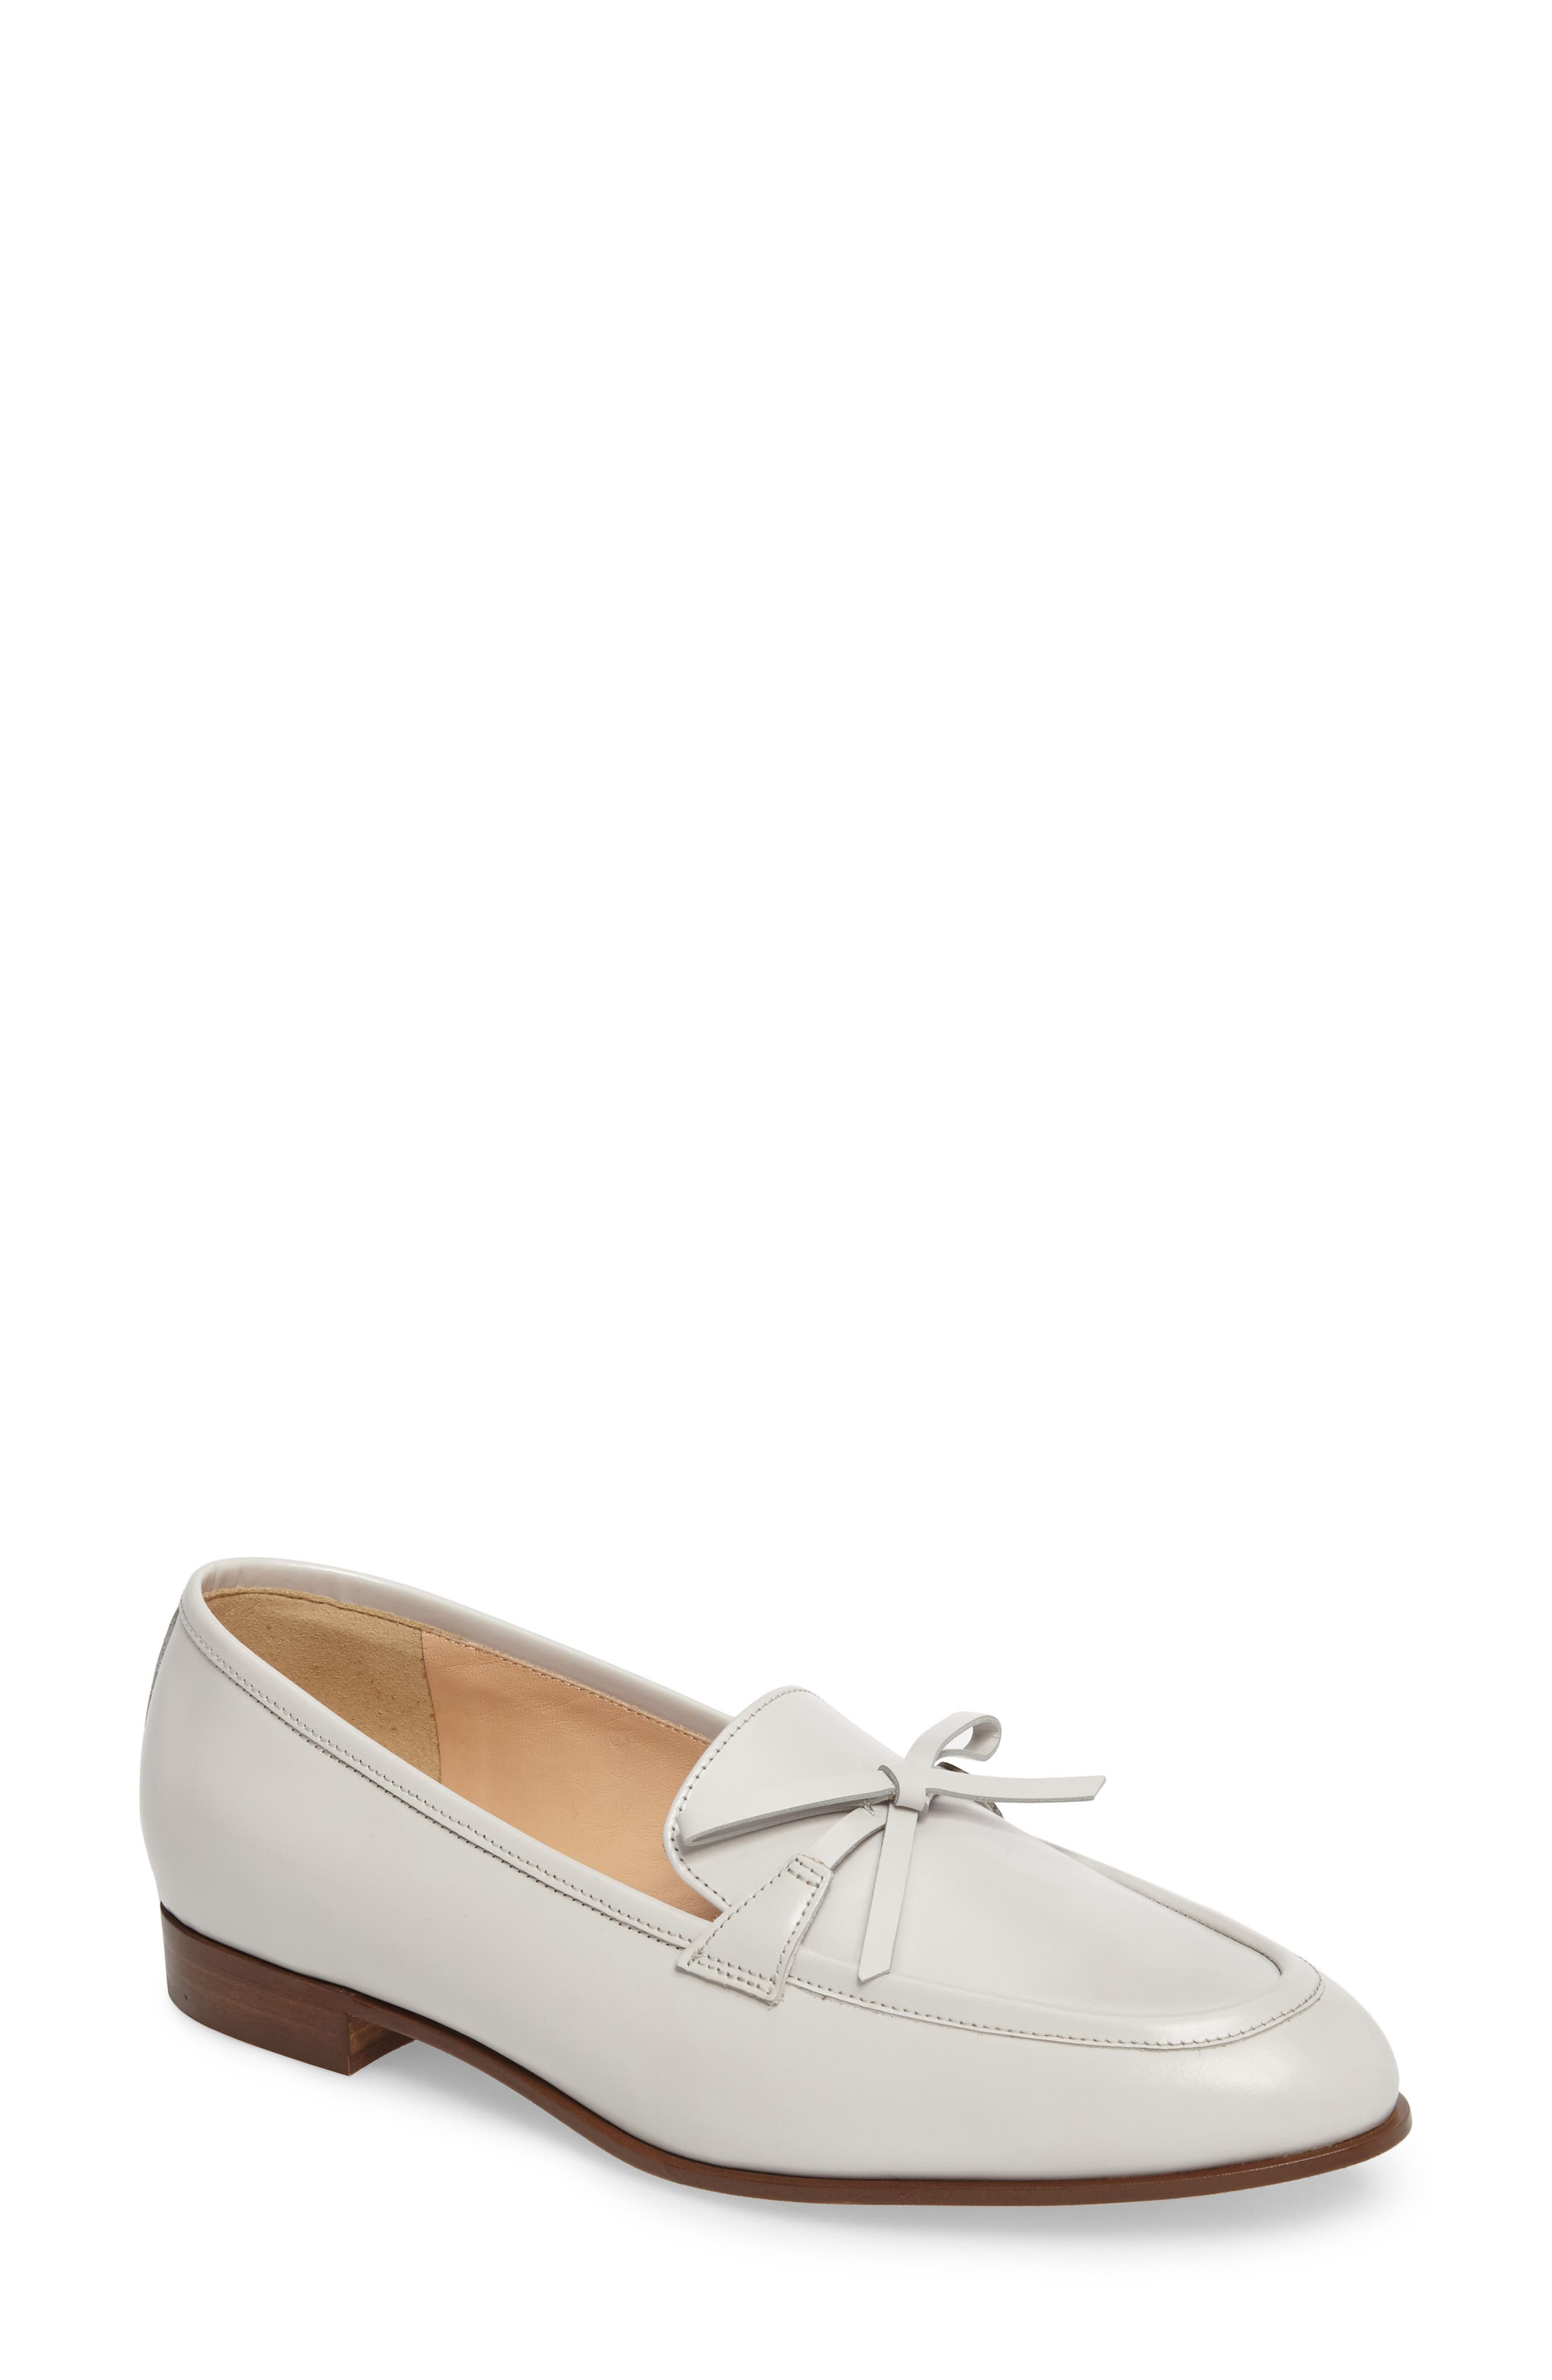 Alternate Image 1 Selected - J.Crew Bow Loafer (Women)